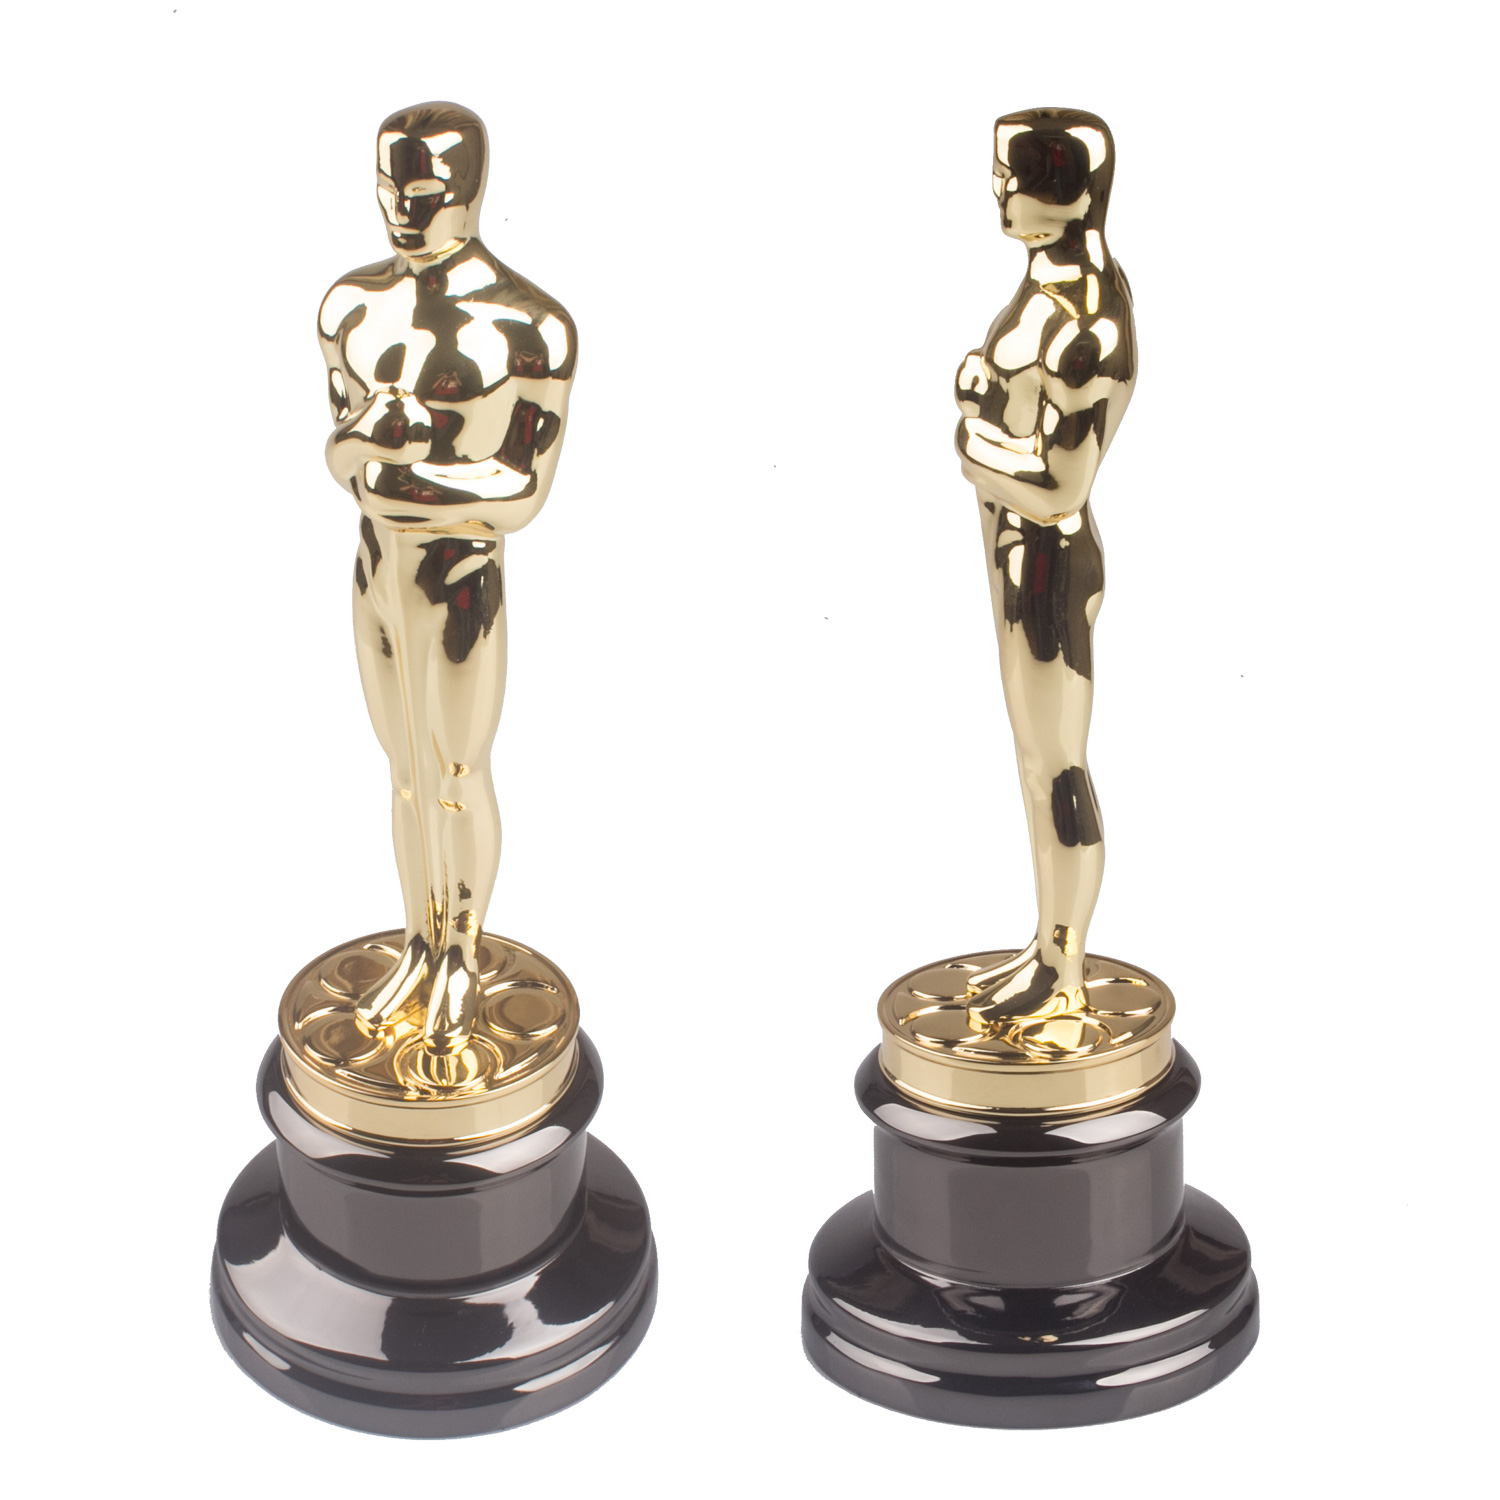 34CM  Original Size Oscar Statuette Trophy Award Metal Scale Replica  Music TV Movie Fans Souvenirs